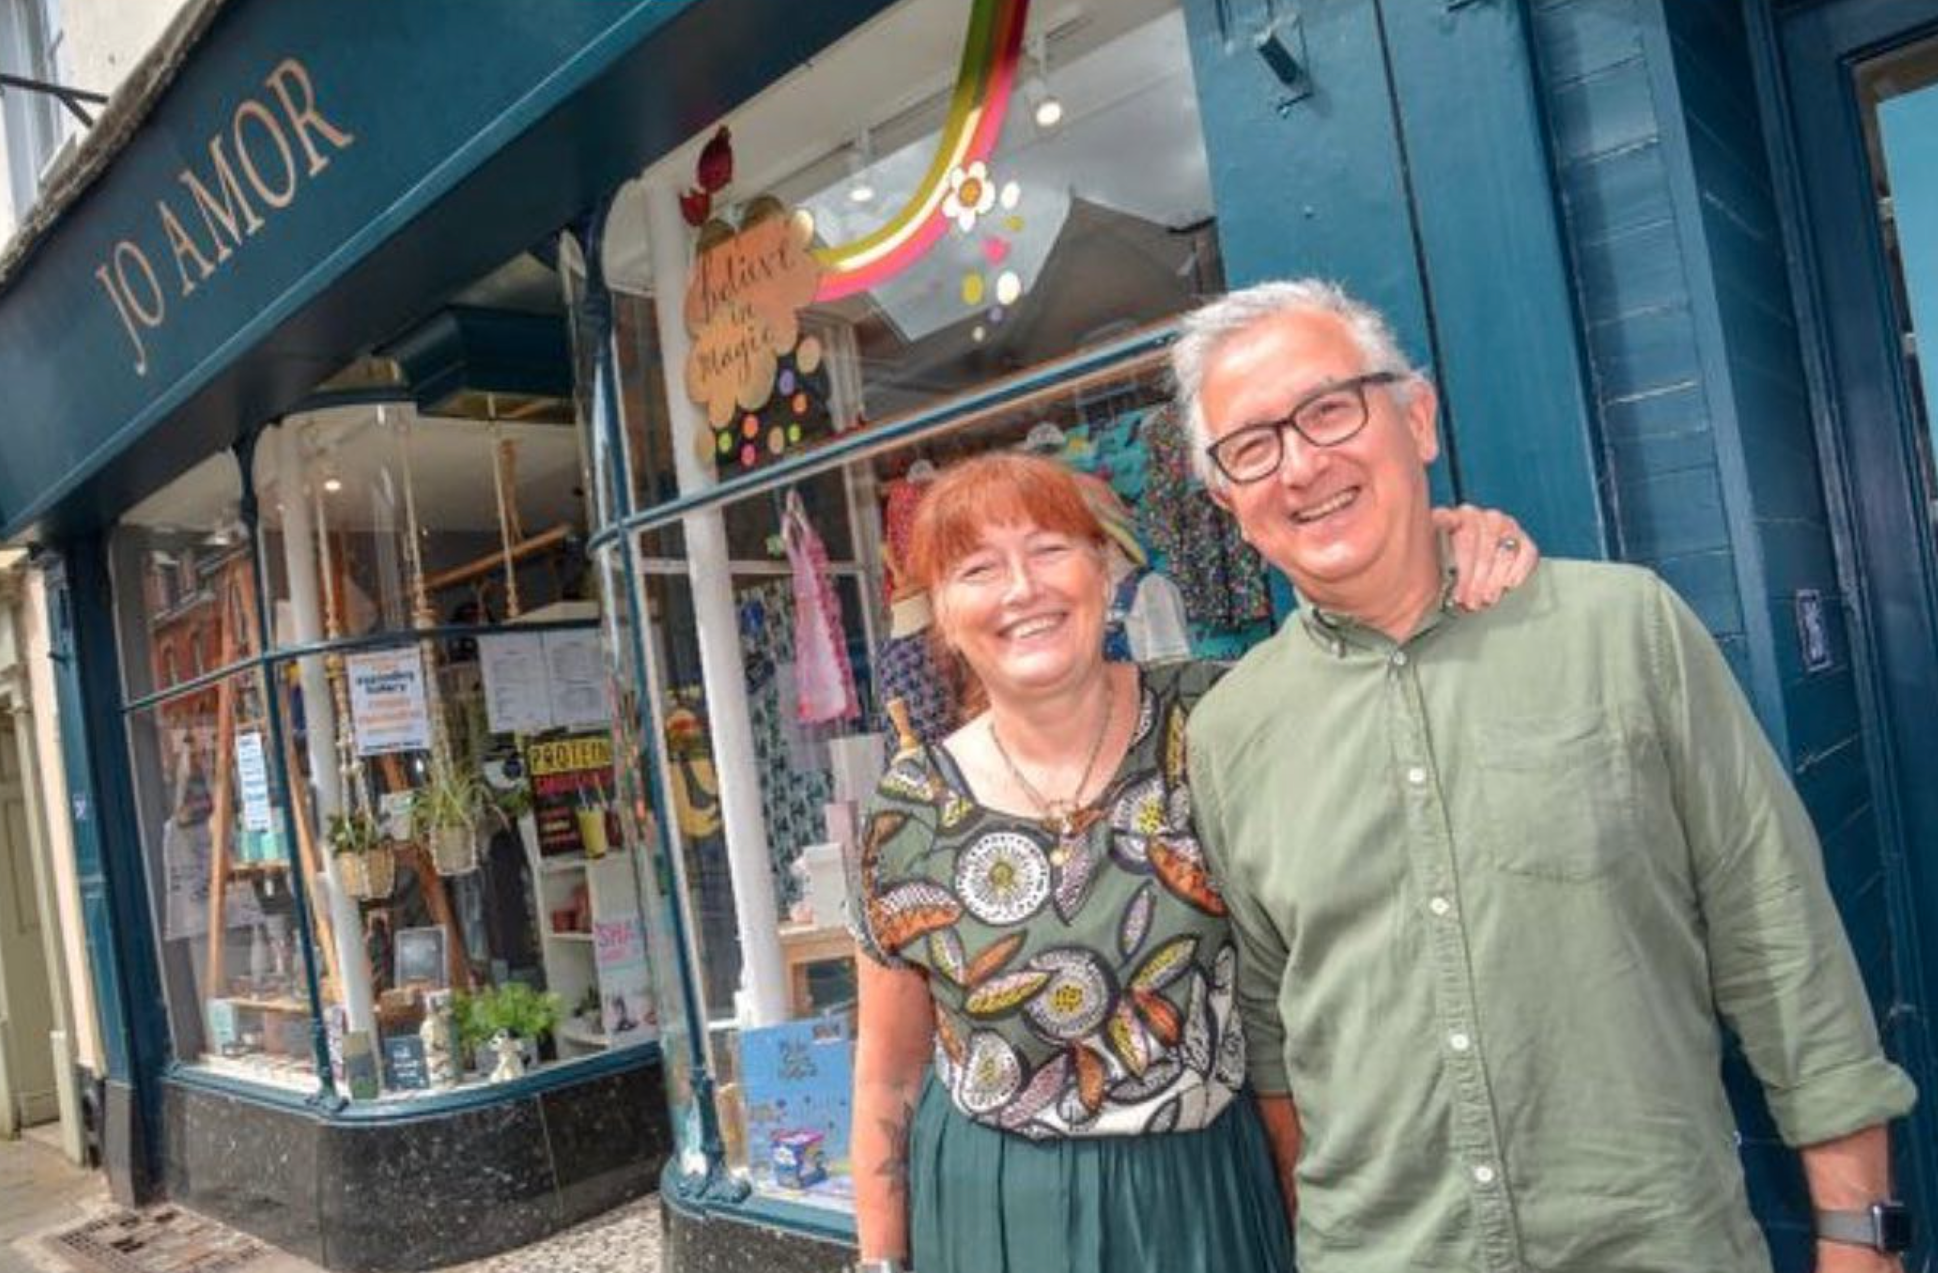 Above: Jo and Mike Webber outside their shop, Jo Amor.